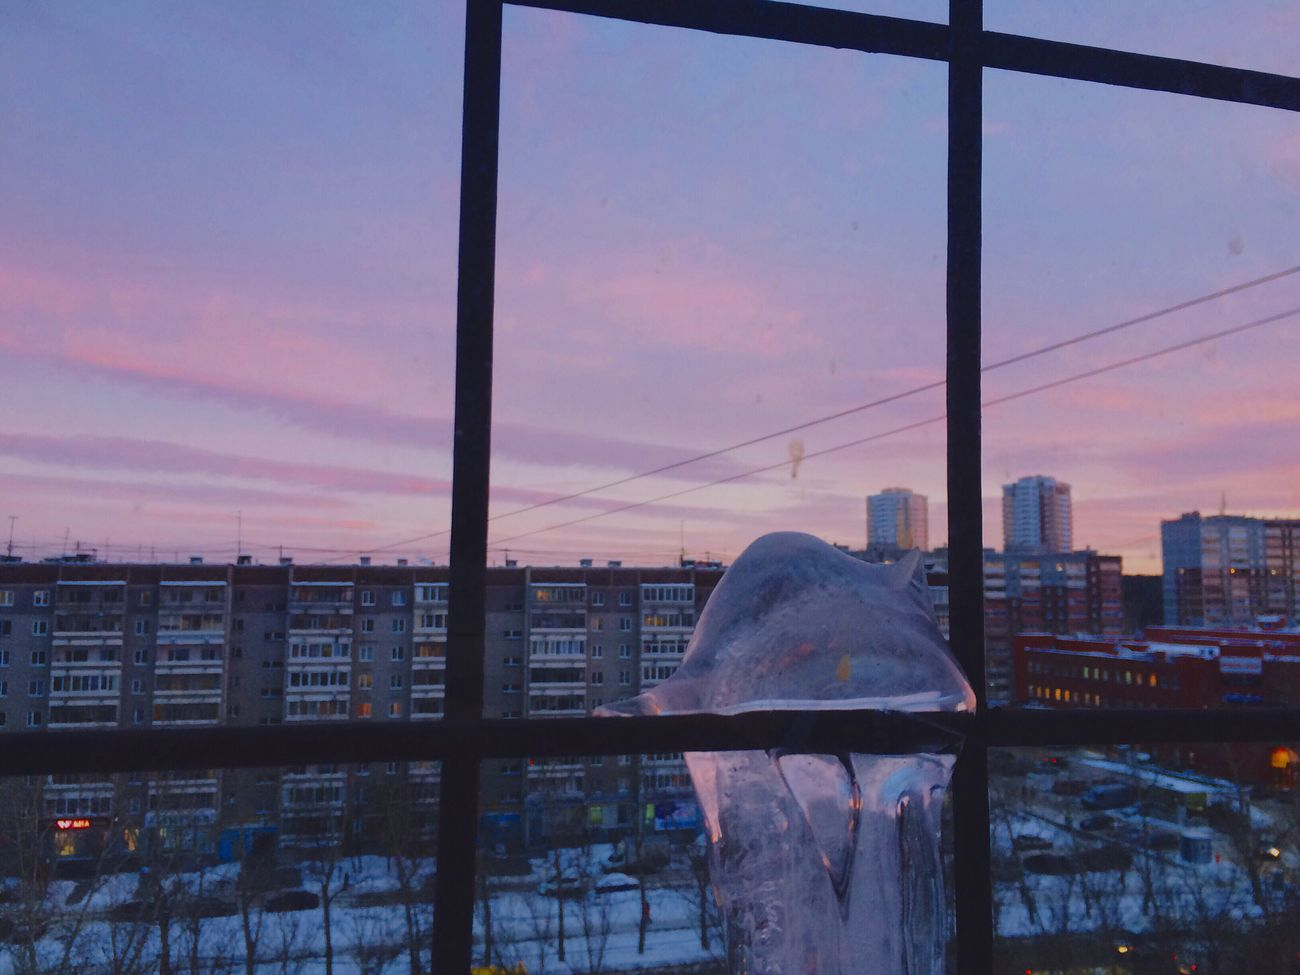 Building Exterior City Sky Reflection Built Structure Architecture Cityscape No People Outdoors Water Nature Weather Frozenwater Pinksky